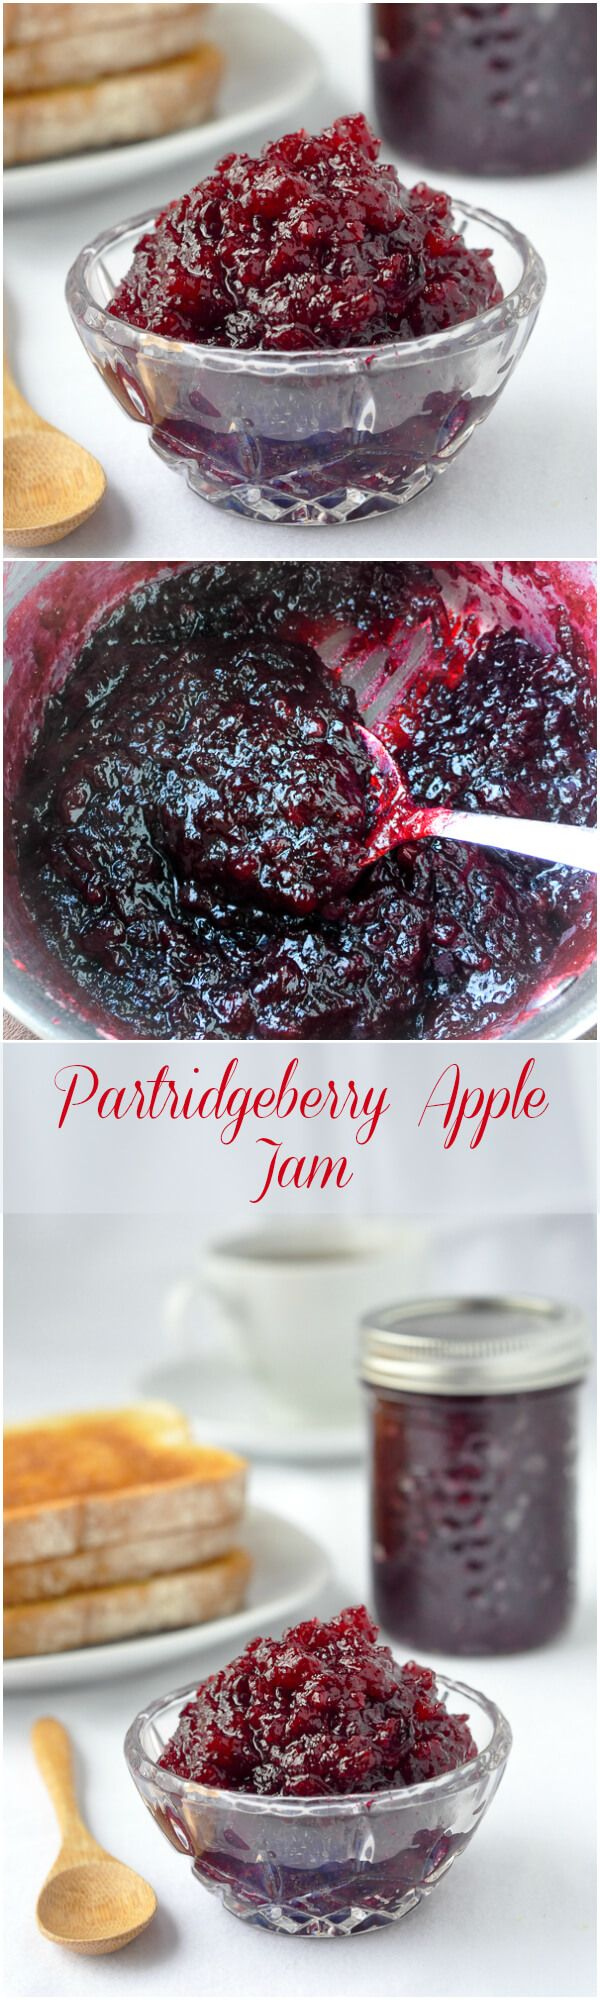 Partridgeberry Apple Jam or Cranberry Apple Jam - a simple, 3 ingredient recipe that takes advantage of the high pectin content in both partridgeberries or cranberries and apples to make a jam that sets beautifully with very little effort at all.